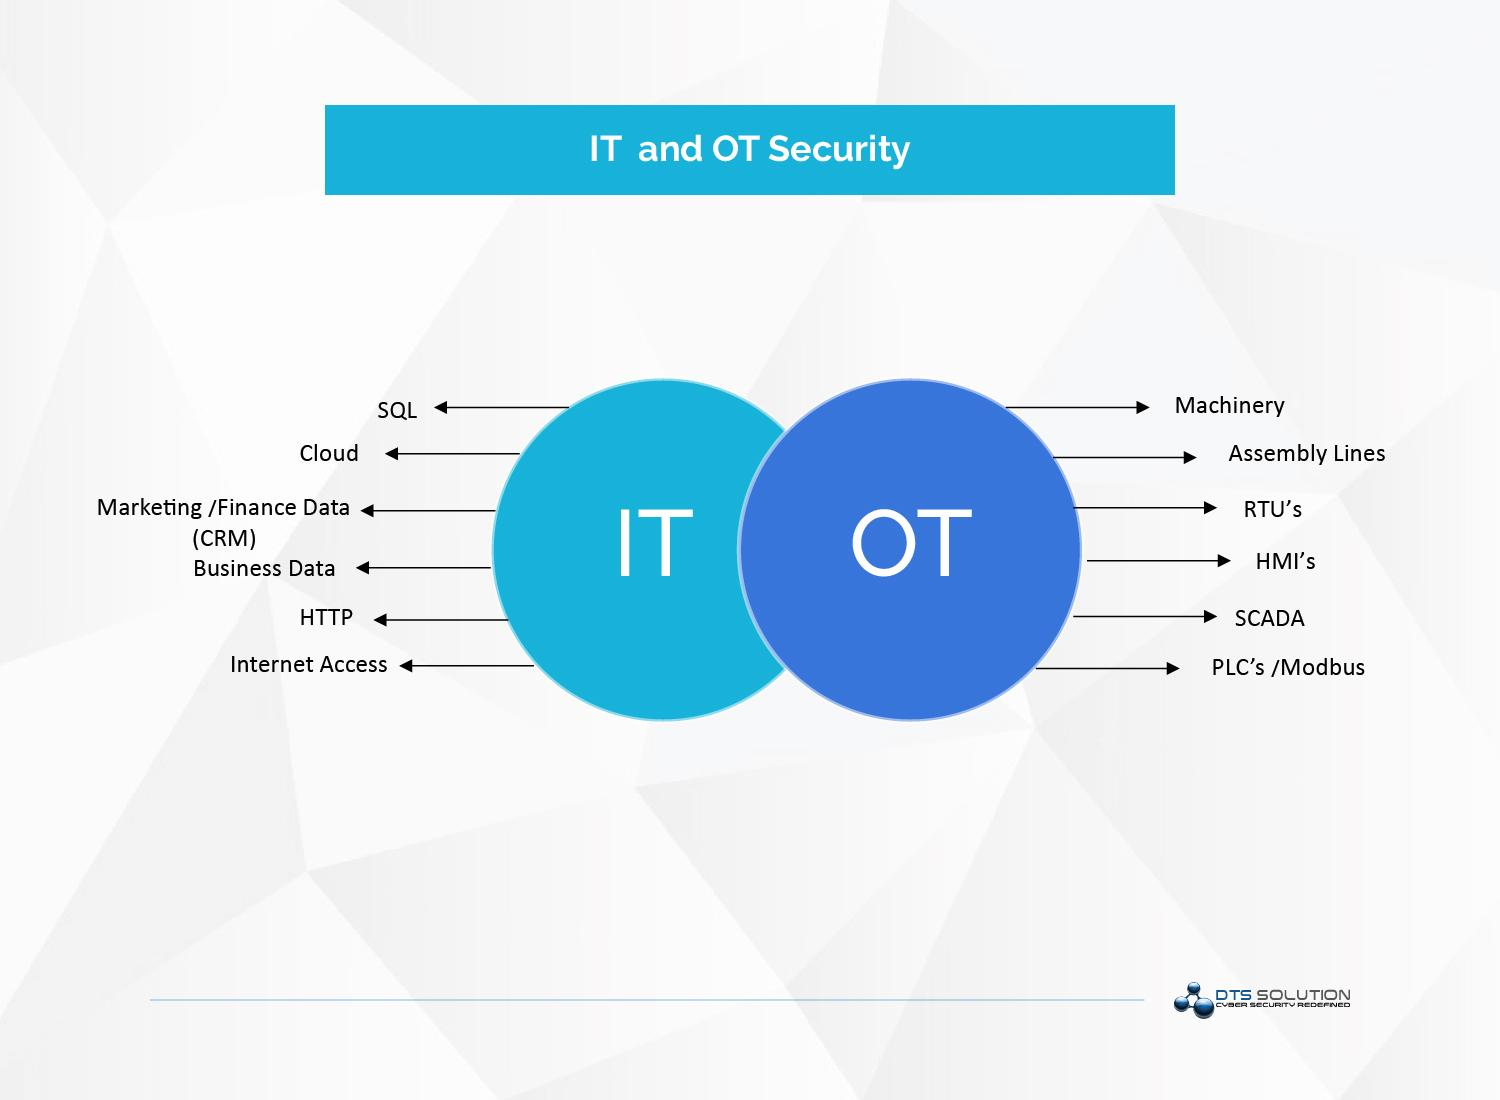 IT and OT Security